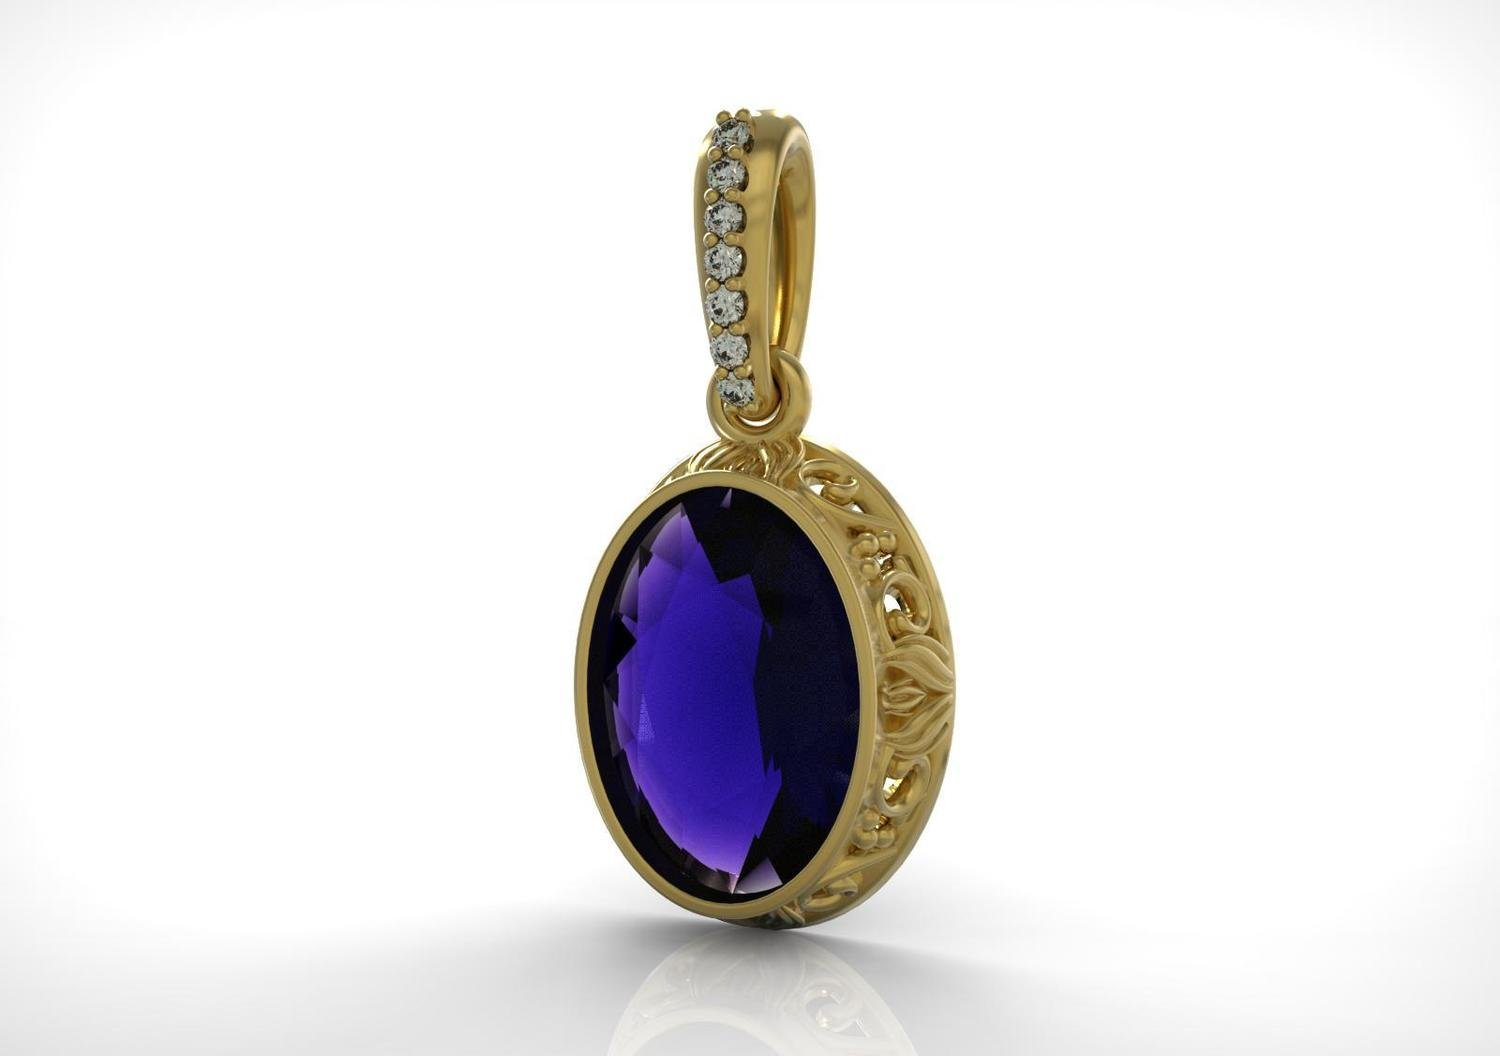 3D CAD Model of Pendant  with Sapphire and Diamonds